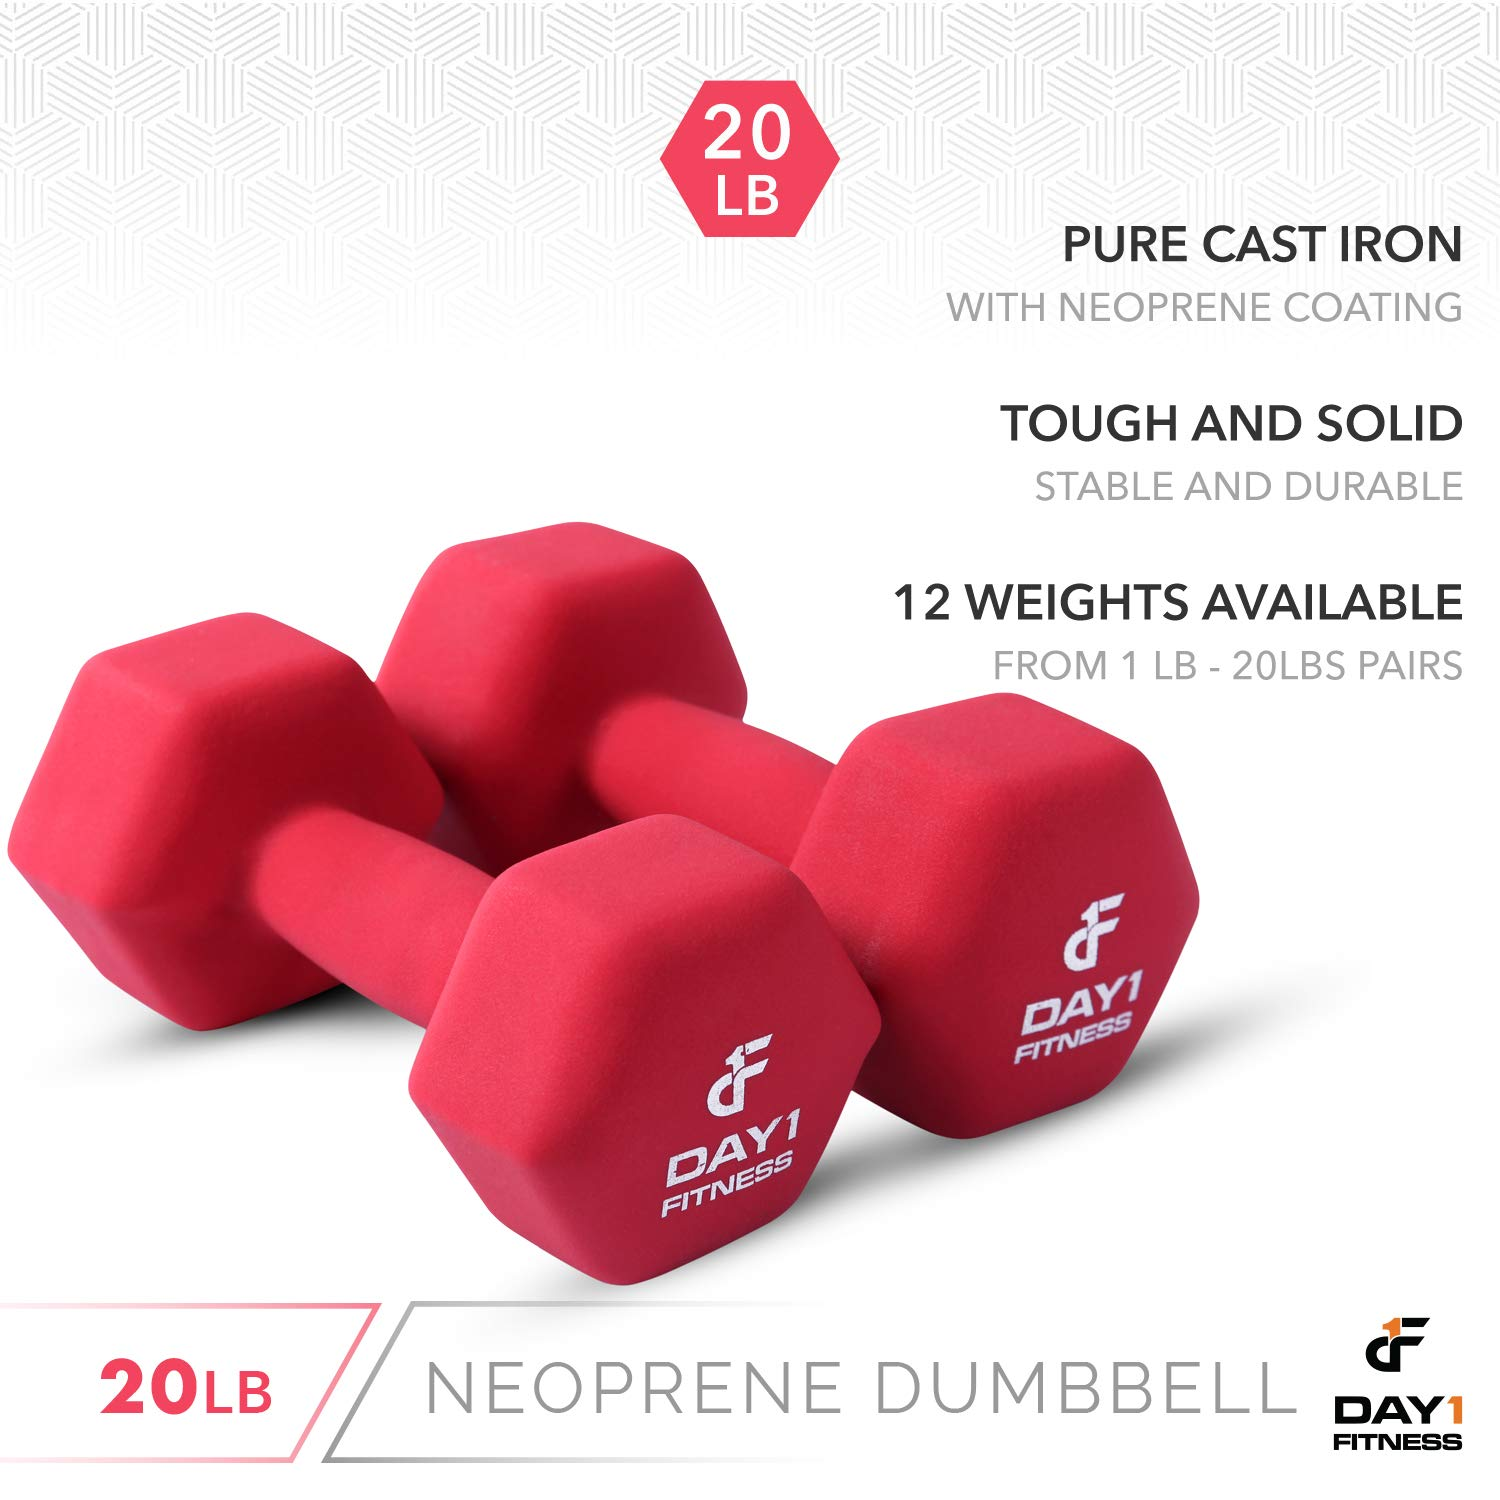 Hexagon Shape Color Coded Non-Slip 12 Sizes of Pairs Available Weight Loss Easy To Read Hand Weights for Muscle Toning Strength Building Neoprene Dumbbell Pairs by Day 1 Fitness 1-20 Pounds